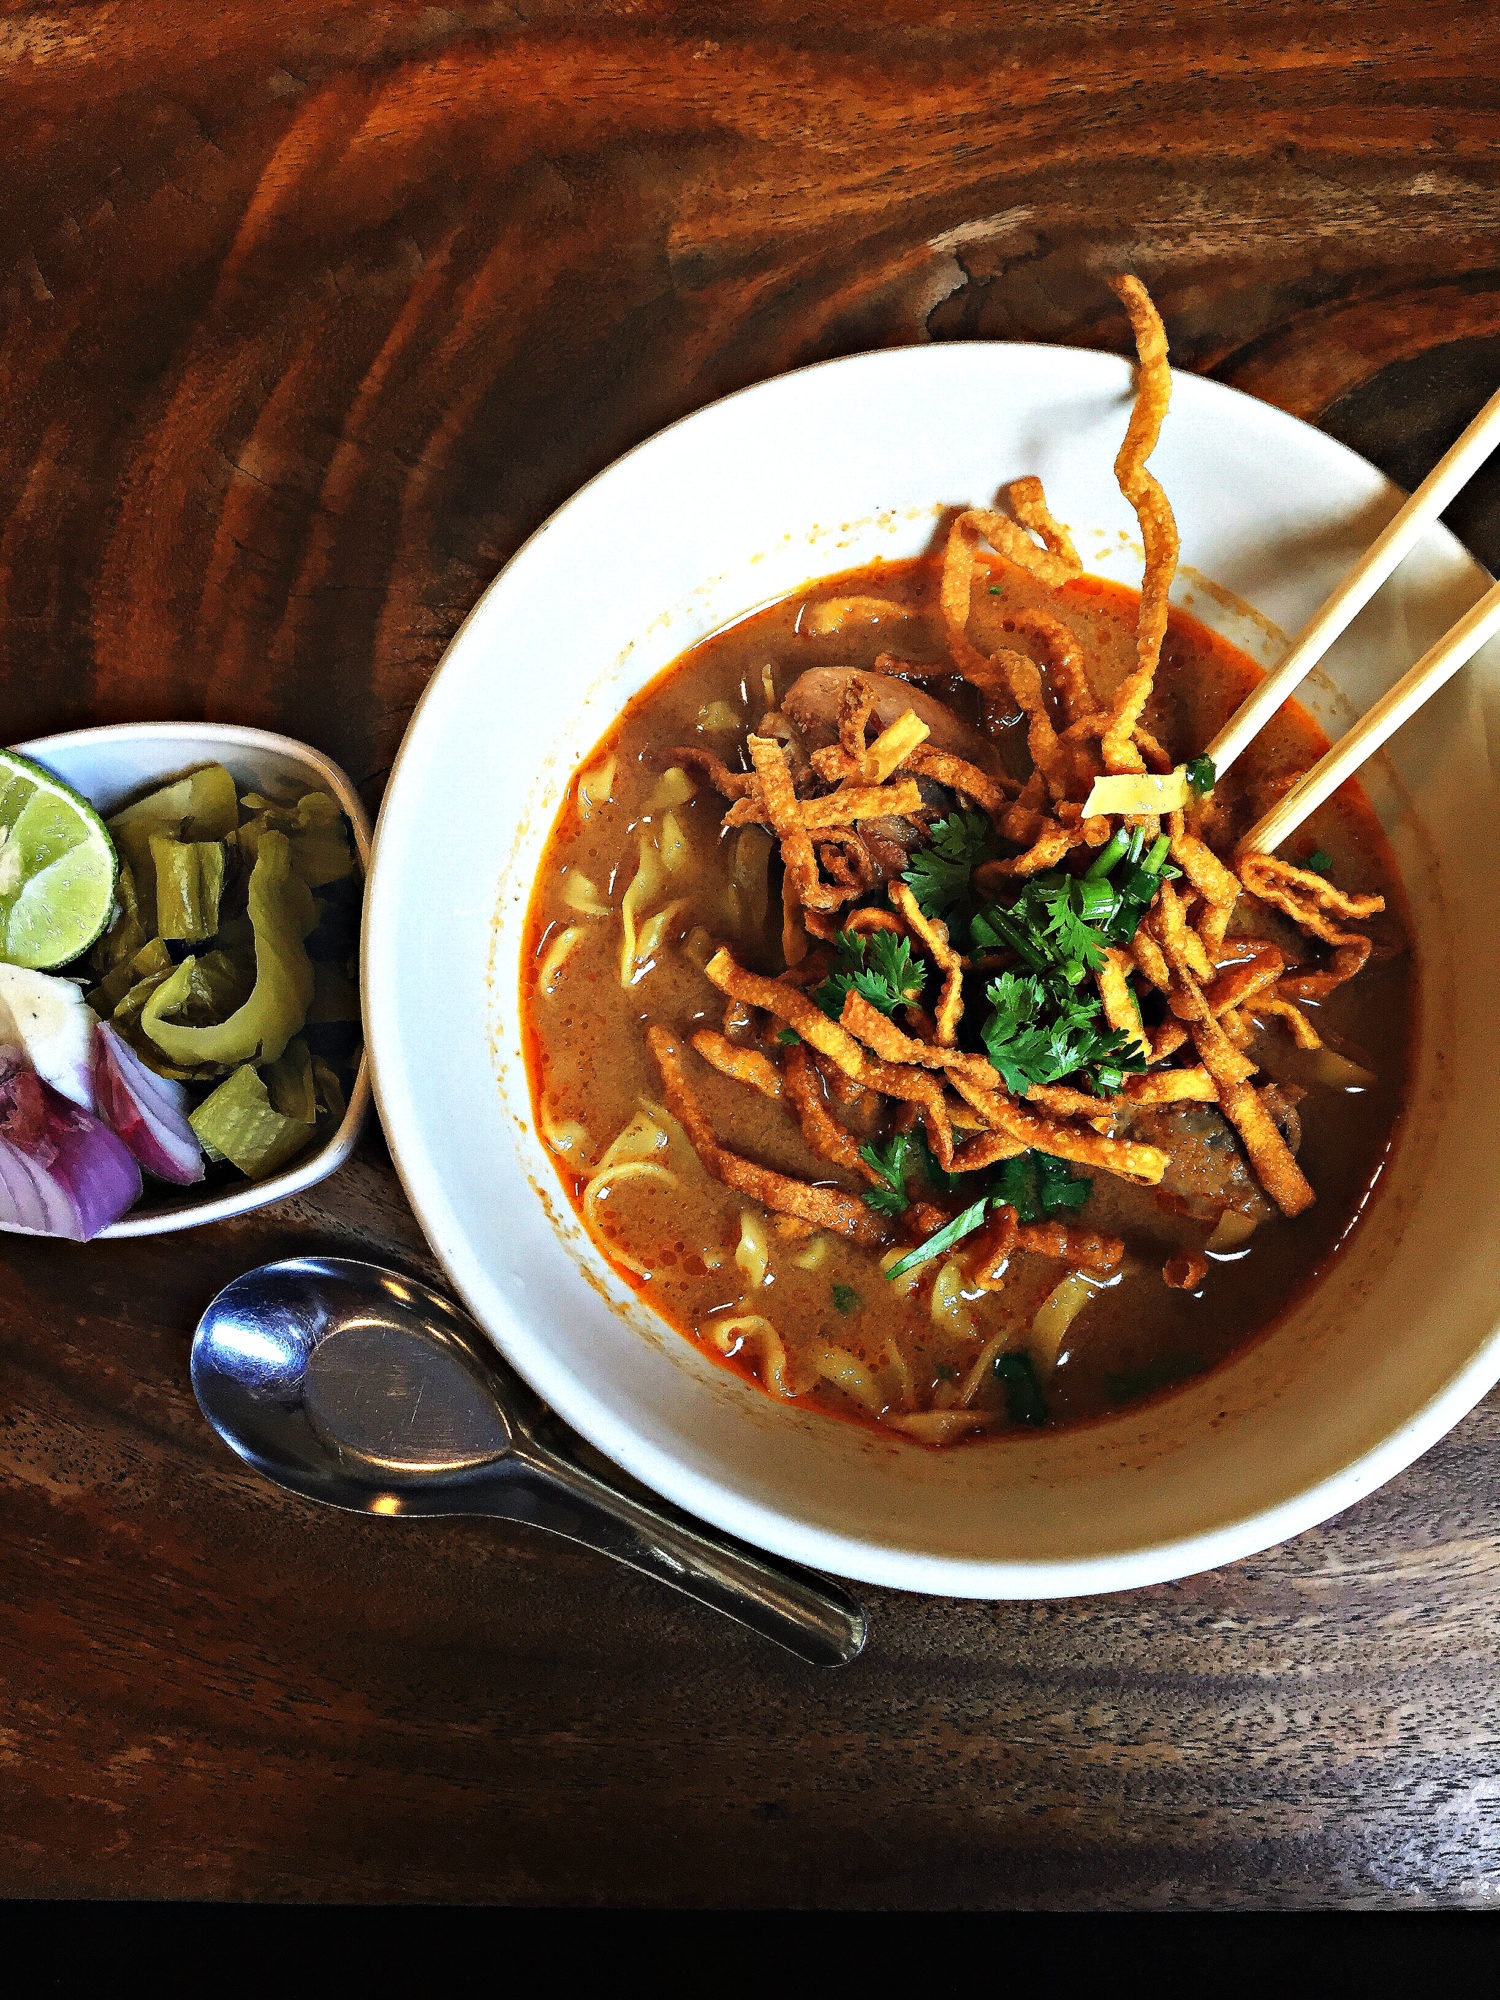 Excellent Food Explains Why There Are So Many Digital Nomads in Chiang Mai